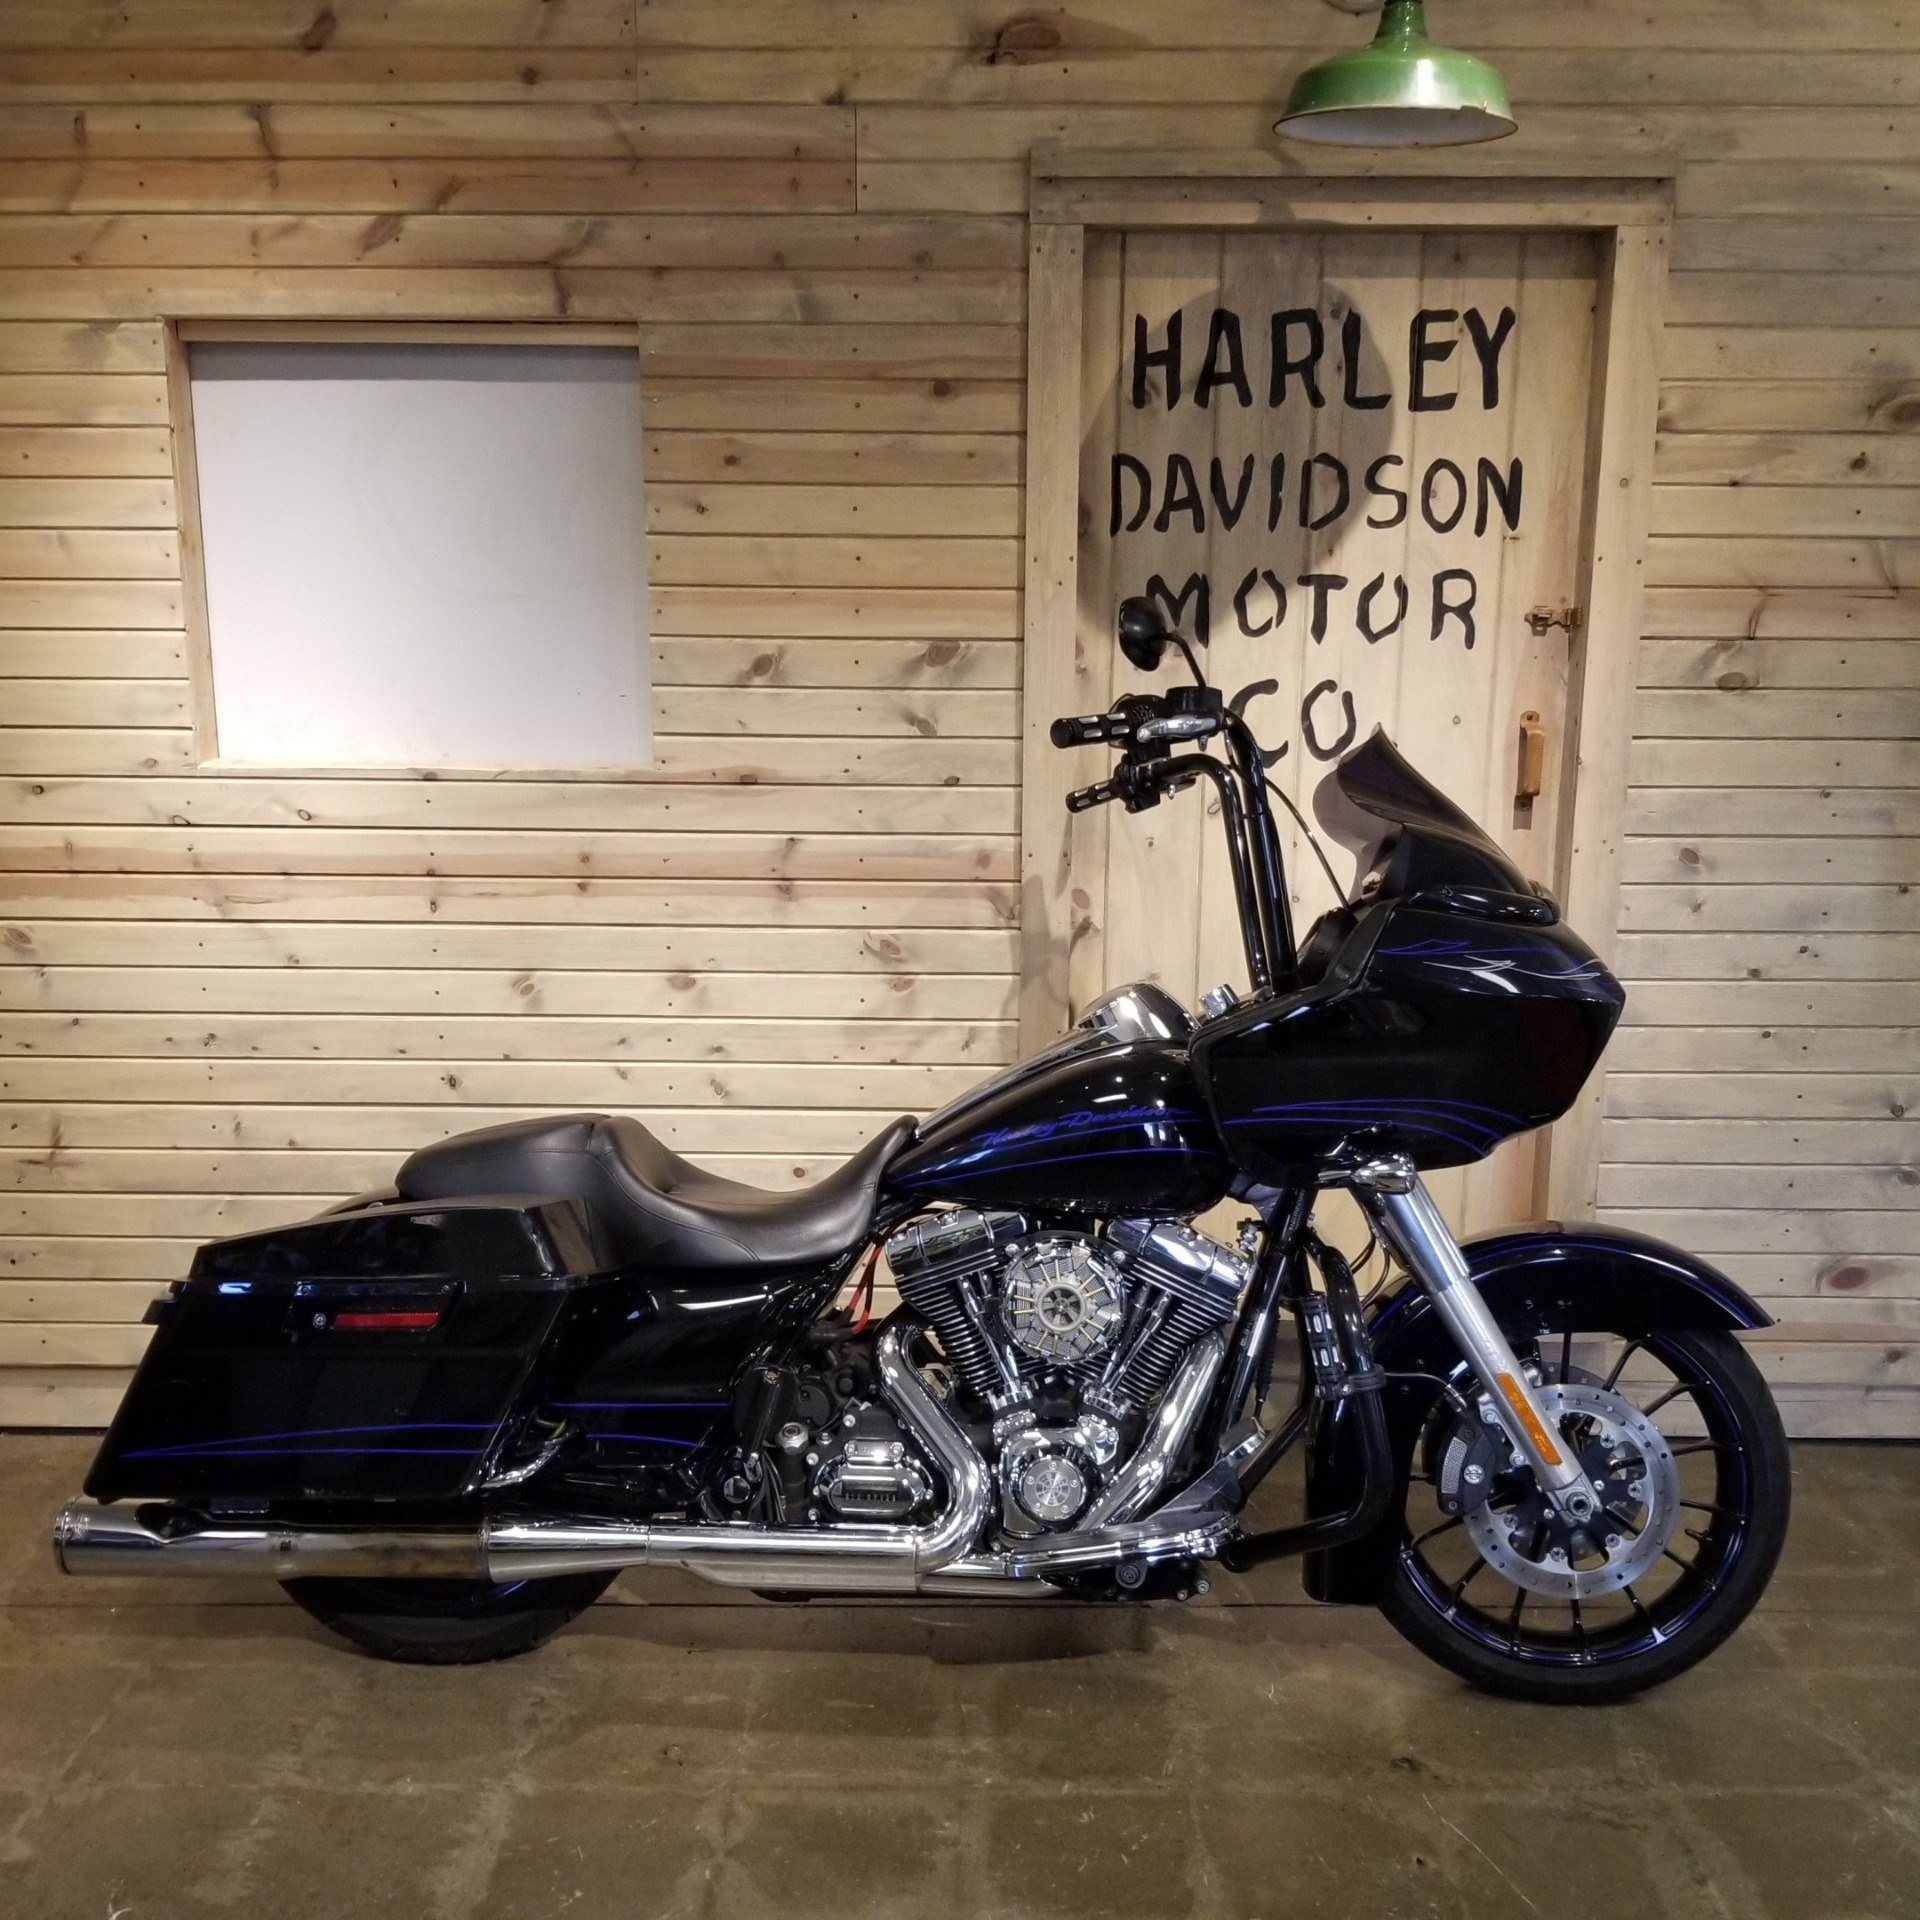 2010 Harley-Davidson Road Glide® Custom in Mentor, Ohio - Photo 1